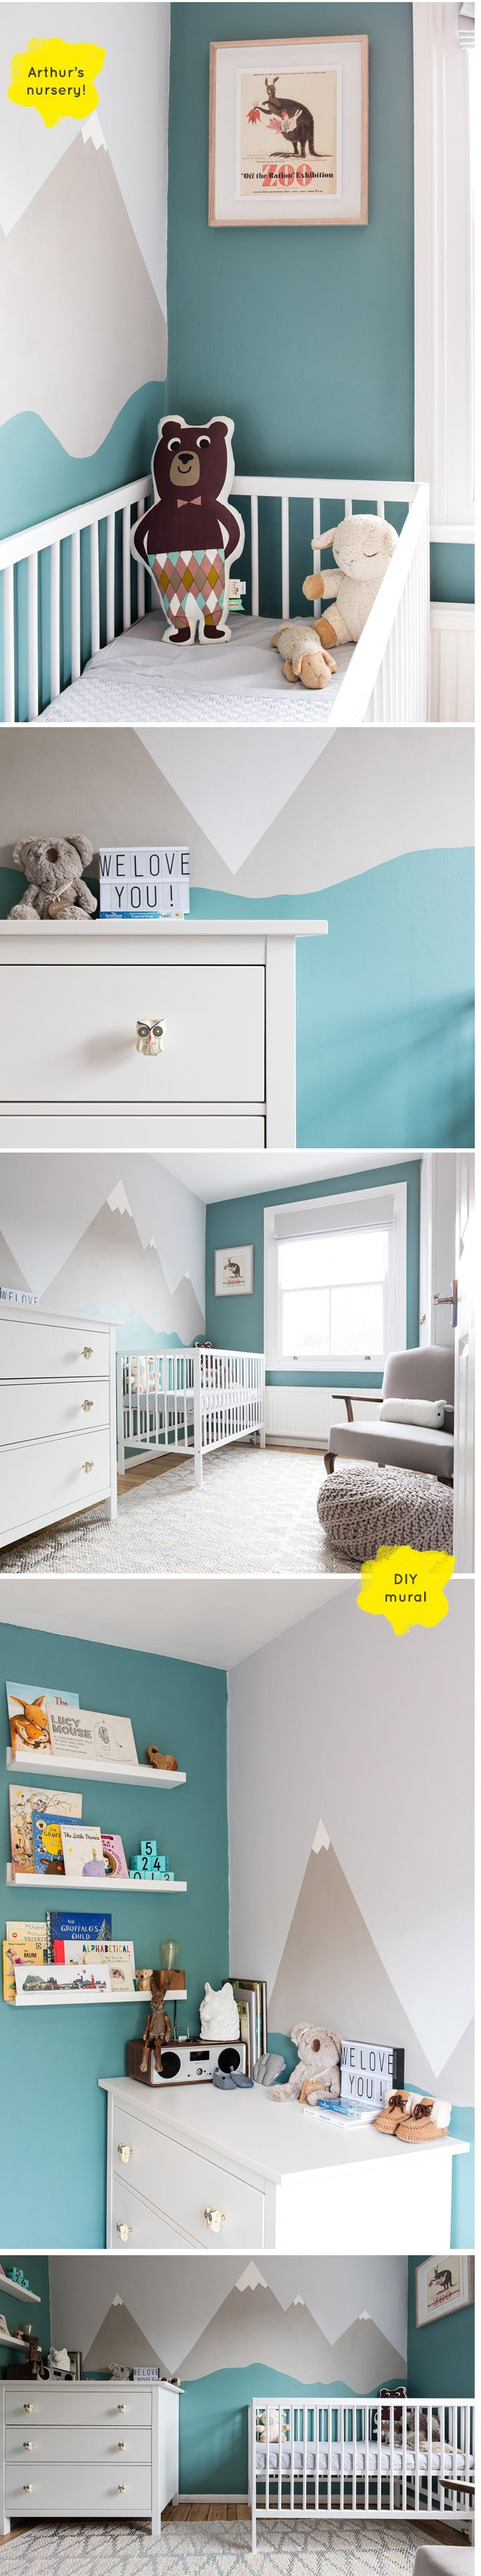 Love this modern nursery by Lucy Gough - it's stylish and simple | Teal | Grey | Mountain DIY Mural | Baby boy | Gender Neutral | Ikea update